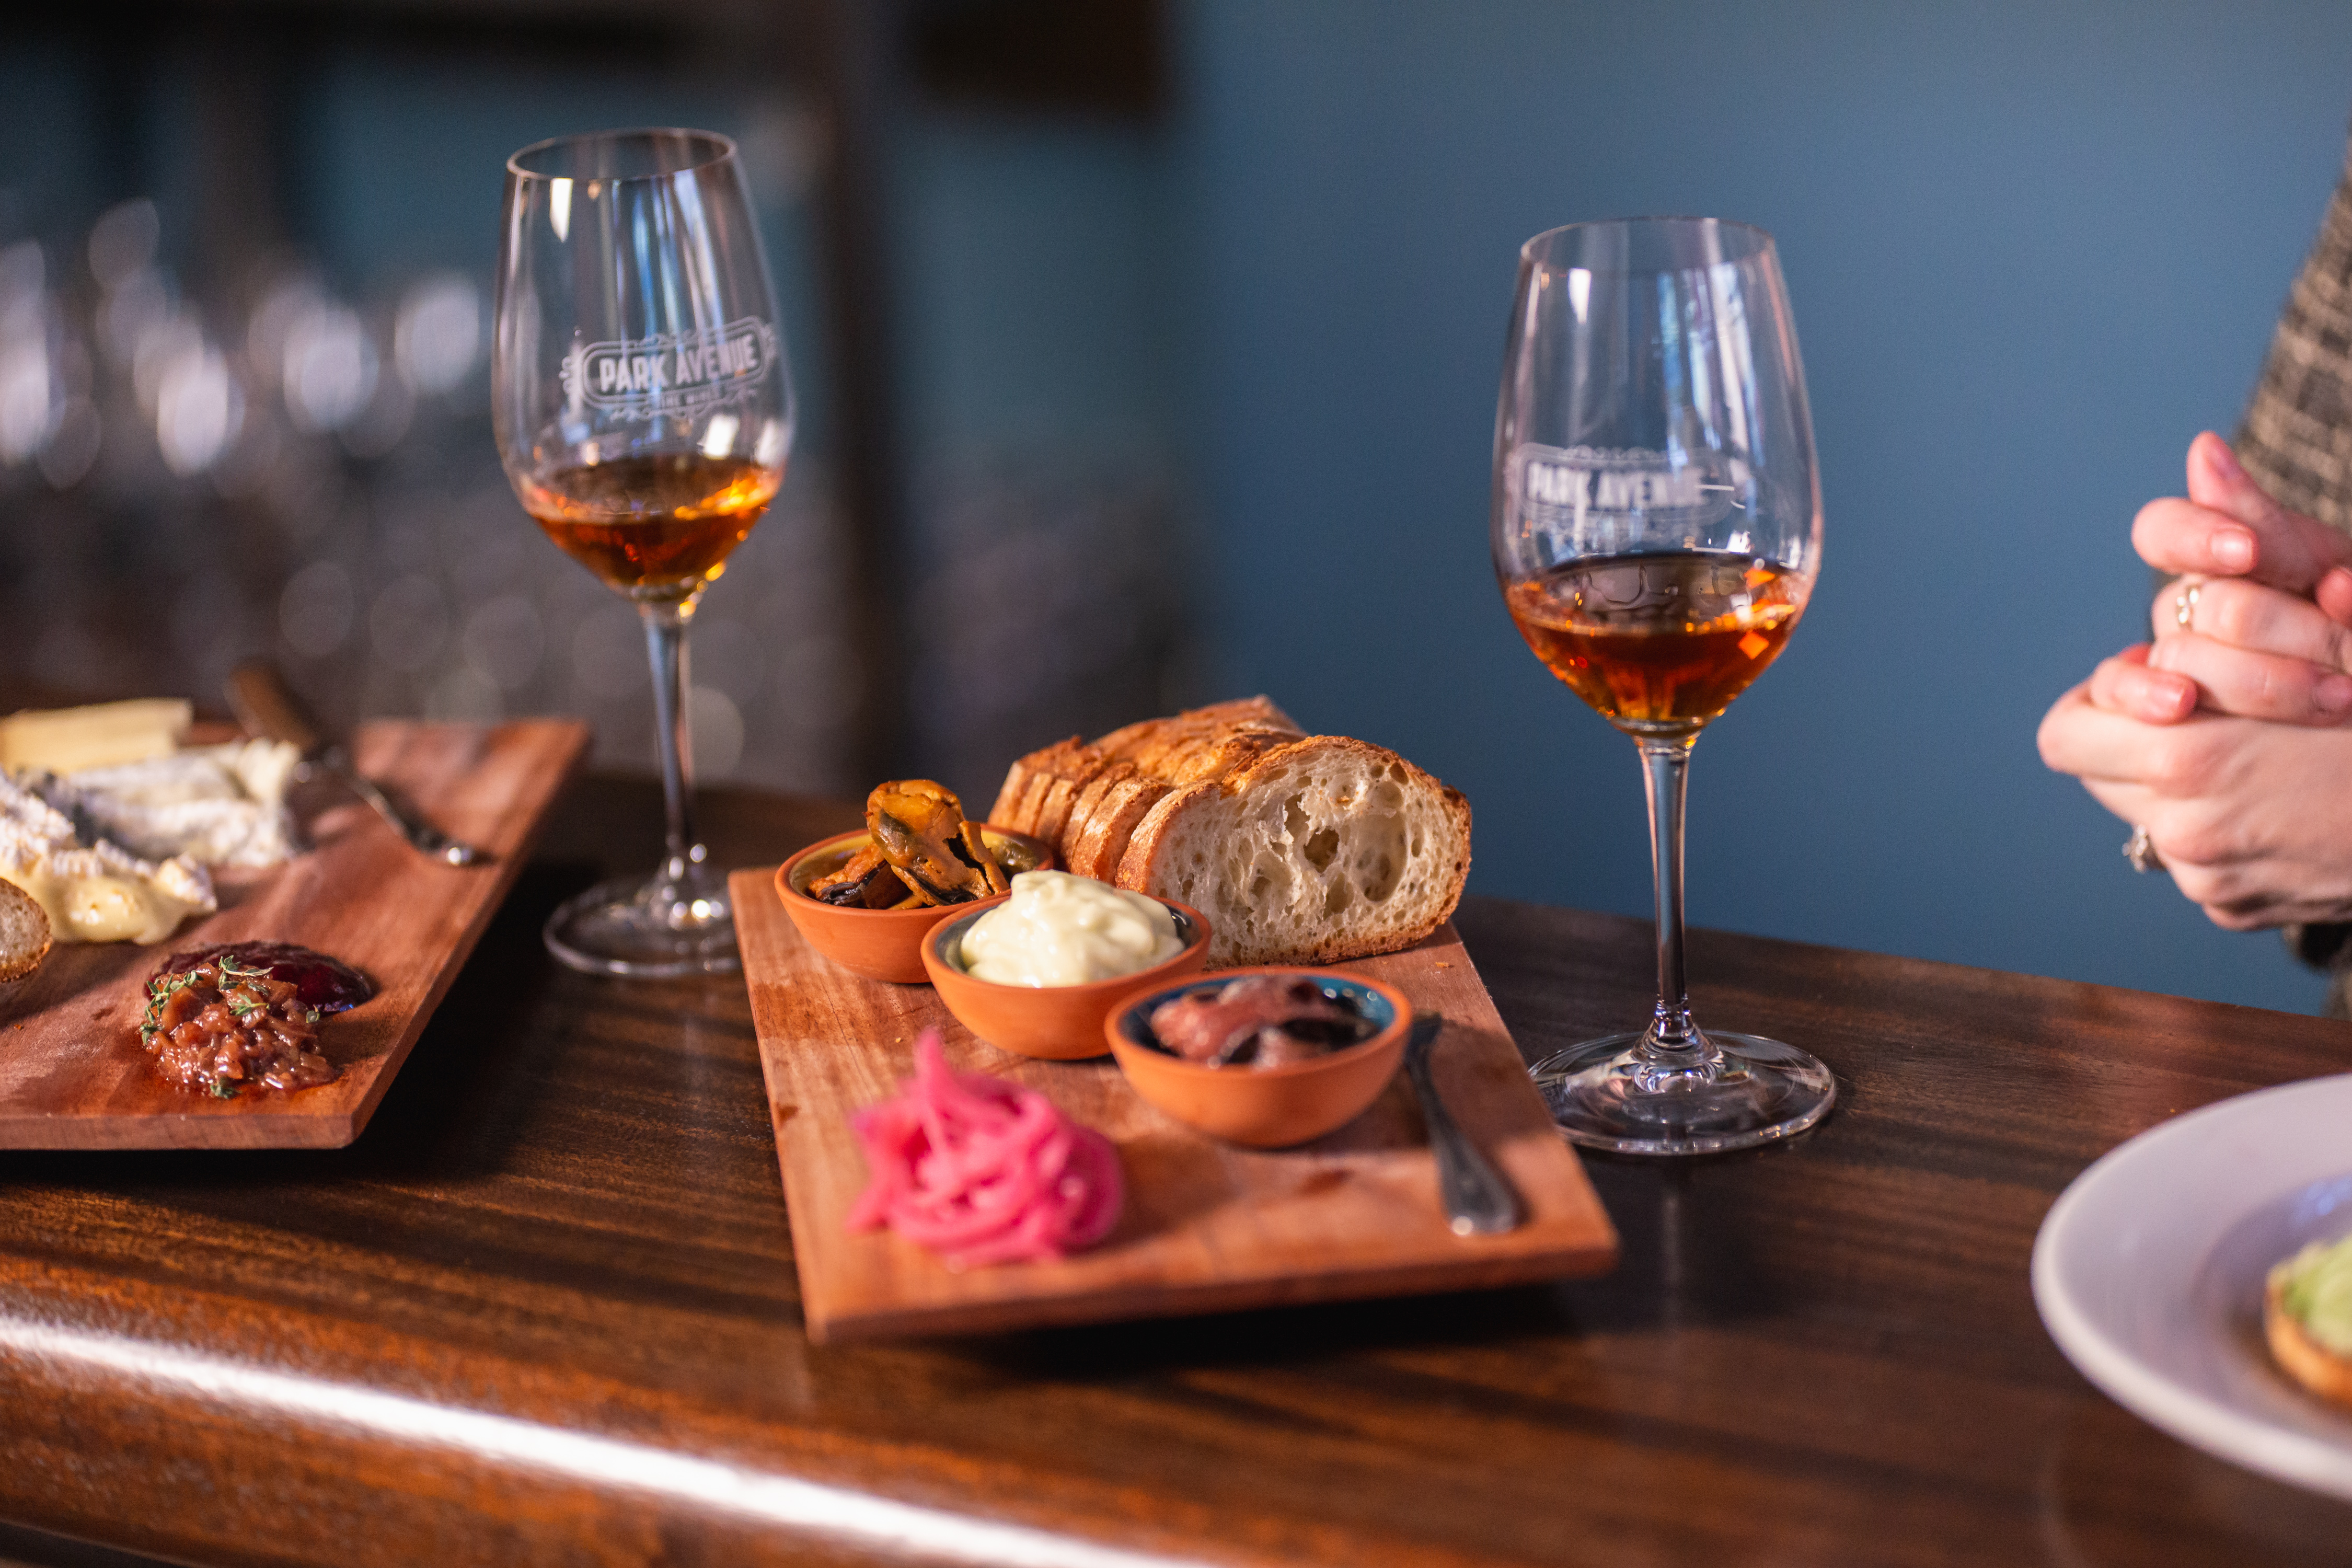 A cheese board sits on a bar between two glasses of dark copper-colored wine